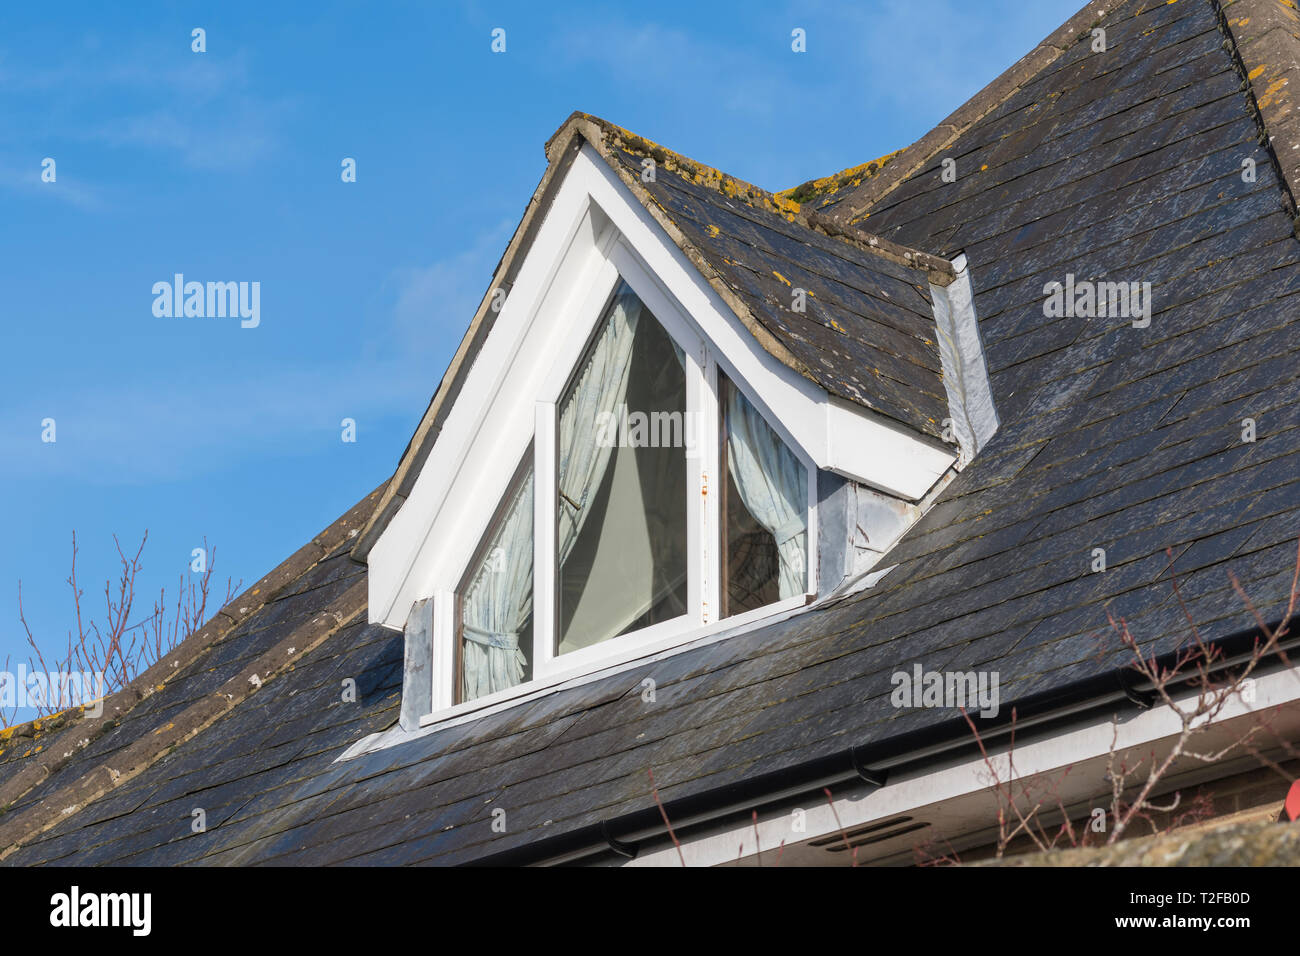 Dormer window protruding from a roof in the UK. Loft window. - Stock Image